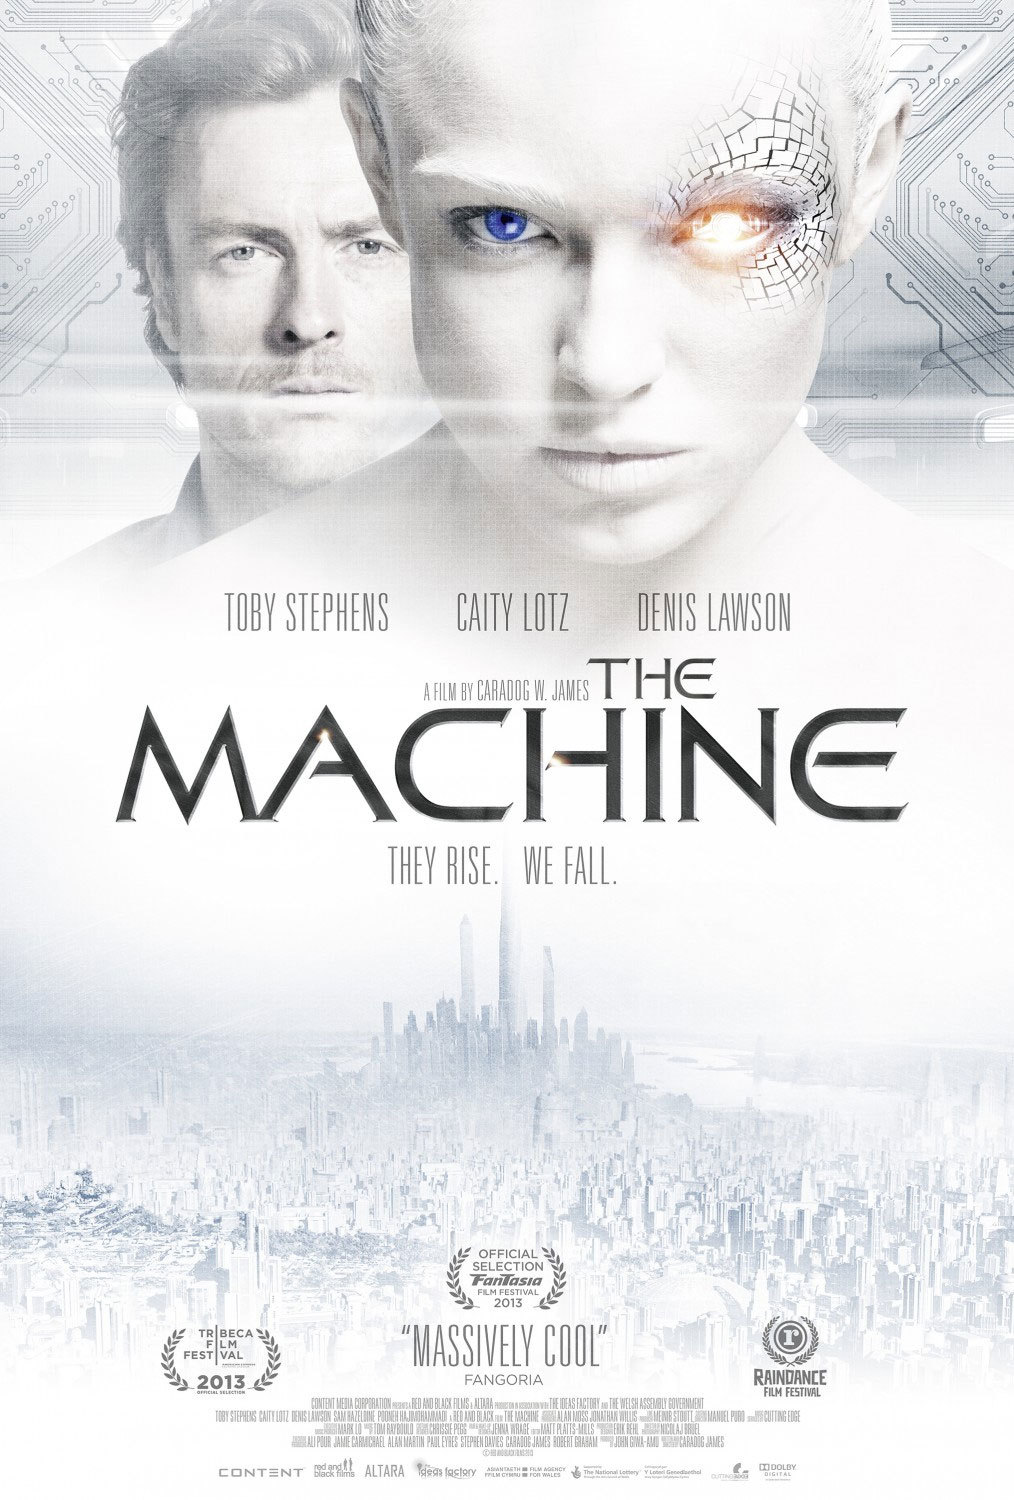 extremely-cool-trailer-for-the-sci-fi-film-the-machine.jpg